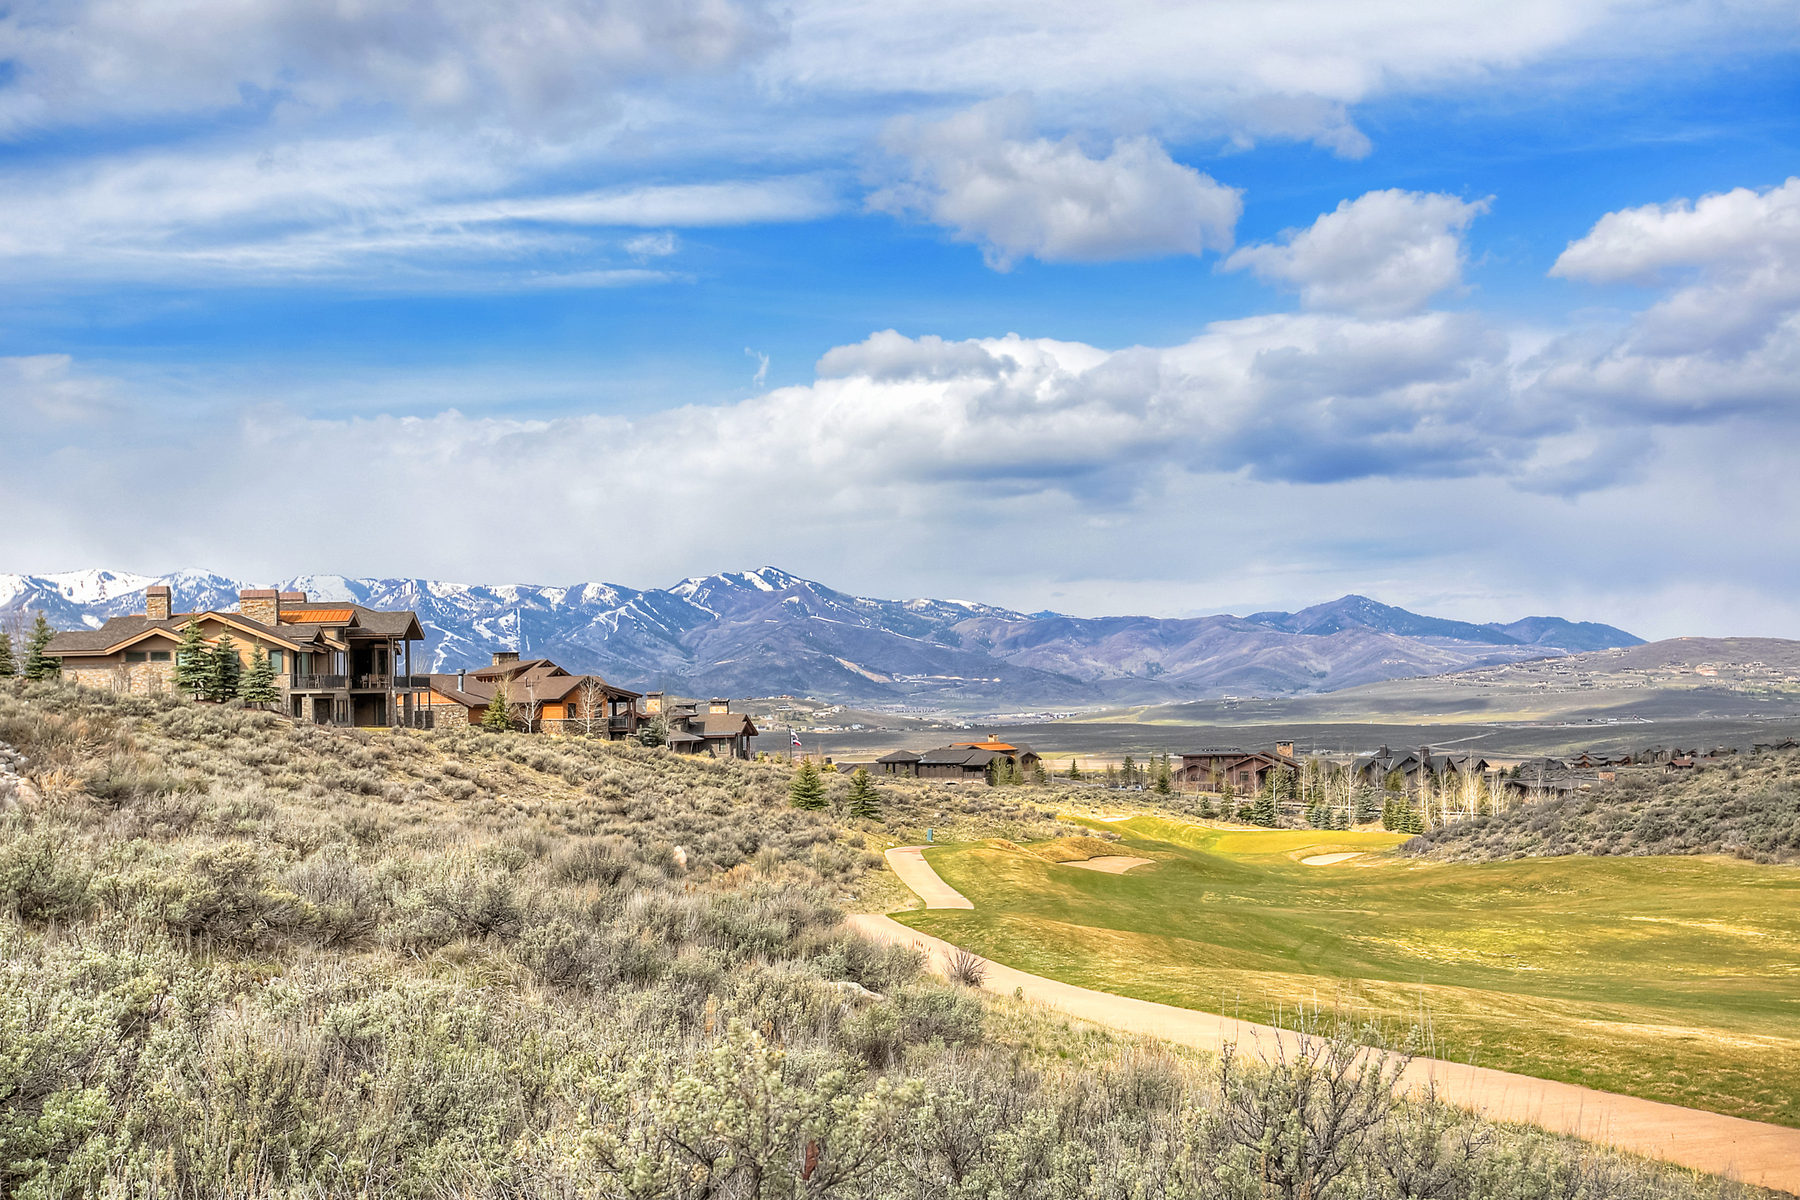 Land for Sale at Terrific Golf Homesite Mountain Views 3217 Westview Trail Lot 24 Park City, Utah 84098 United States